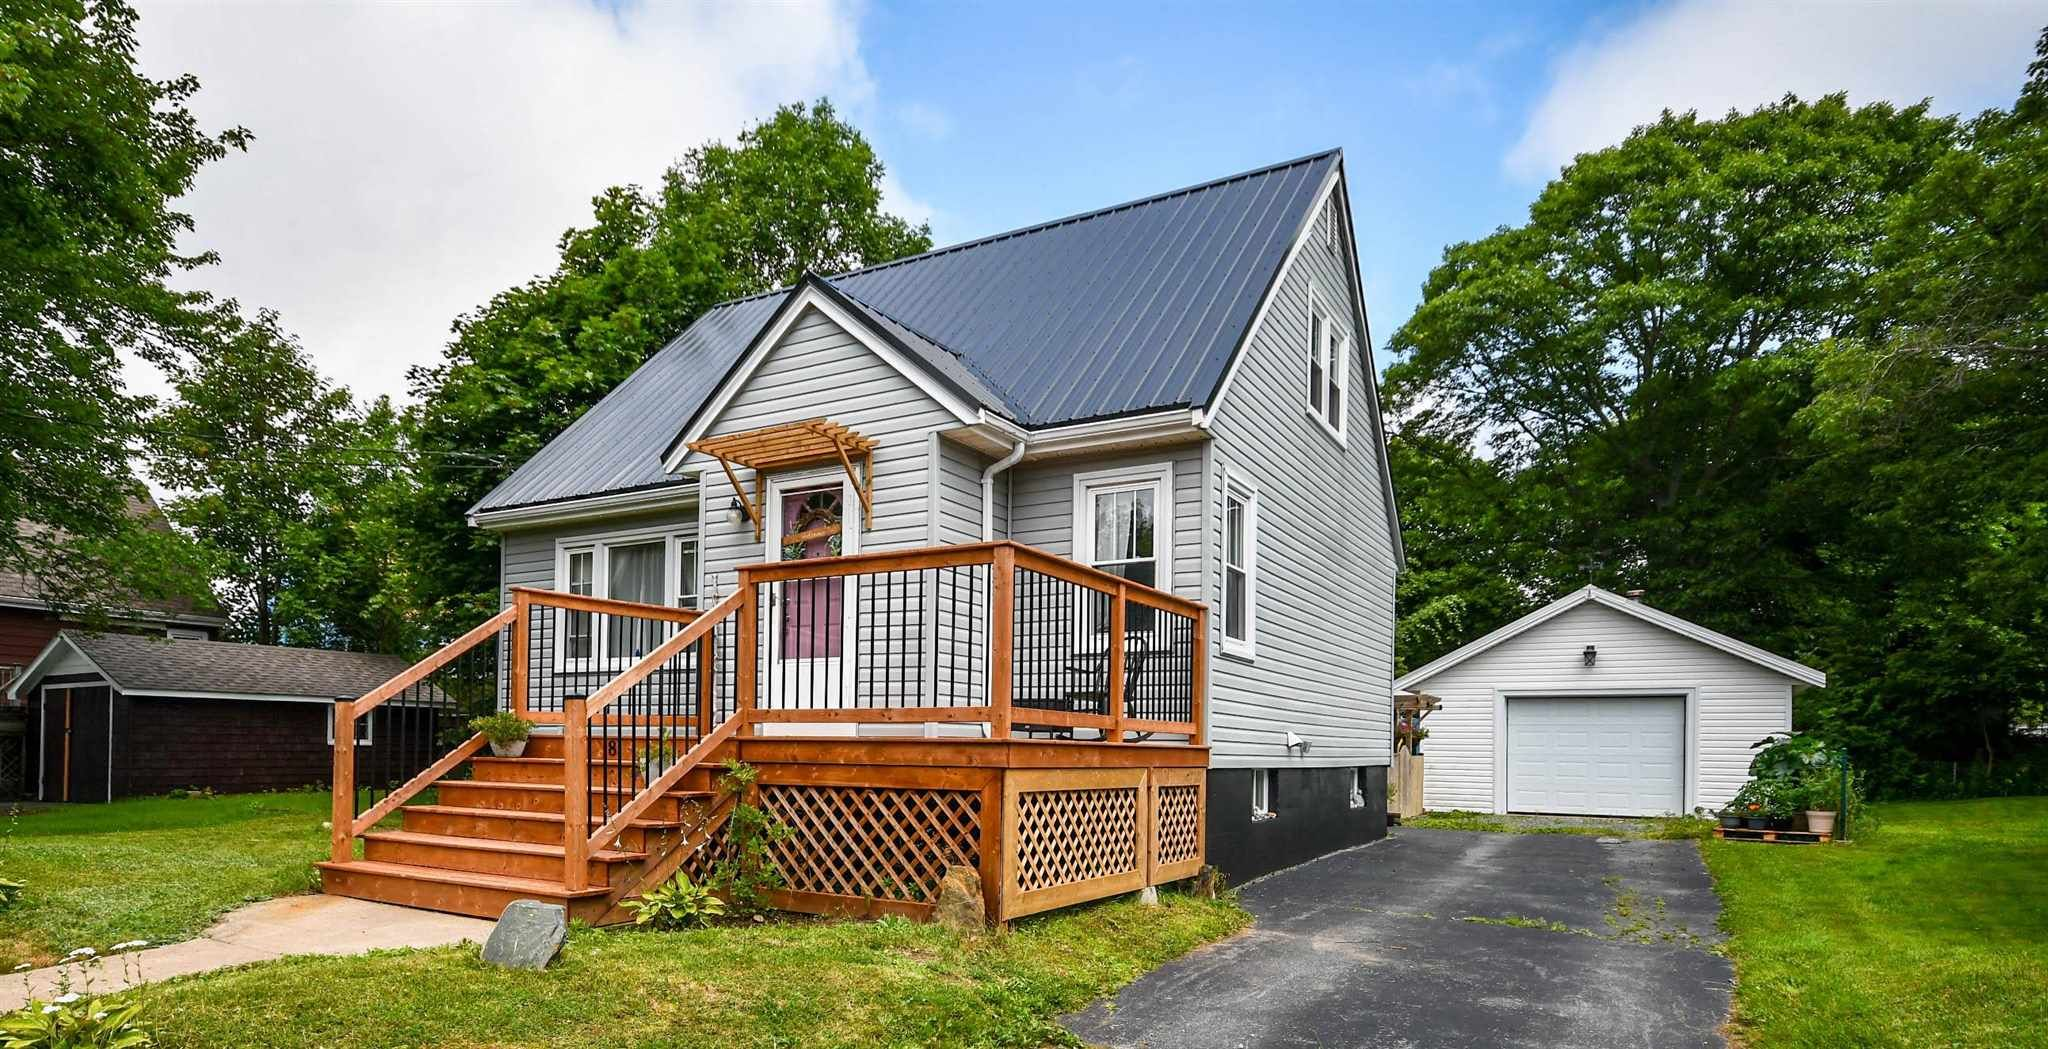 Main Photo: 8 Murray Street in Dartmouth: 10-Dartmouth Downtown To Burnside Residential for sale (Halifax-Dartmouth)  : MLS®# 202118815